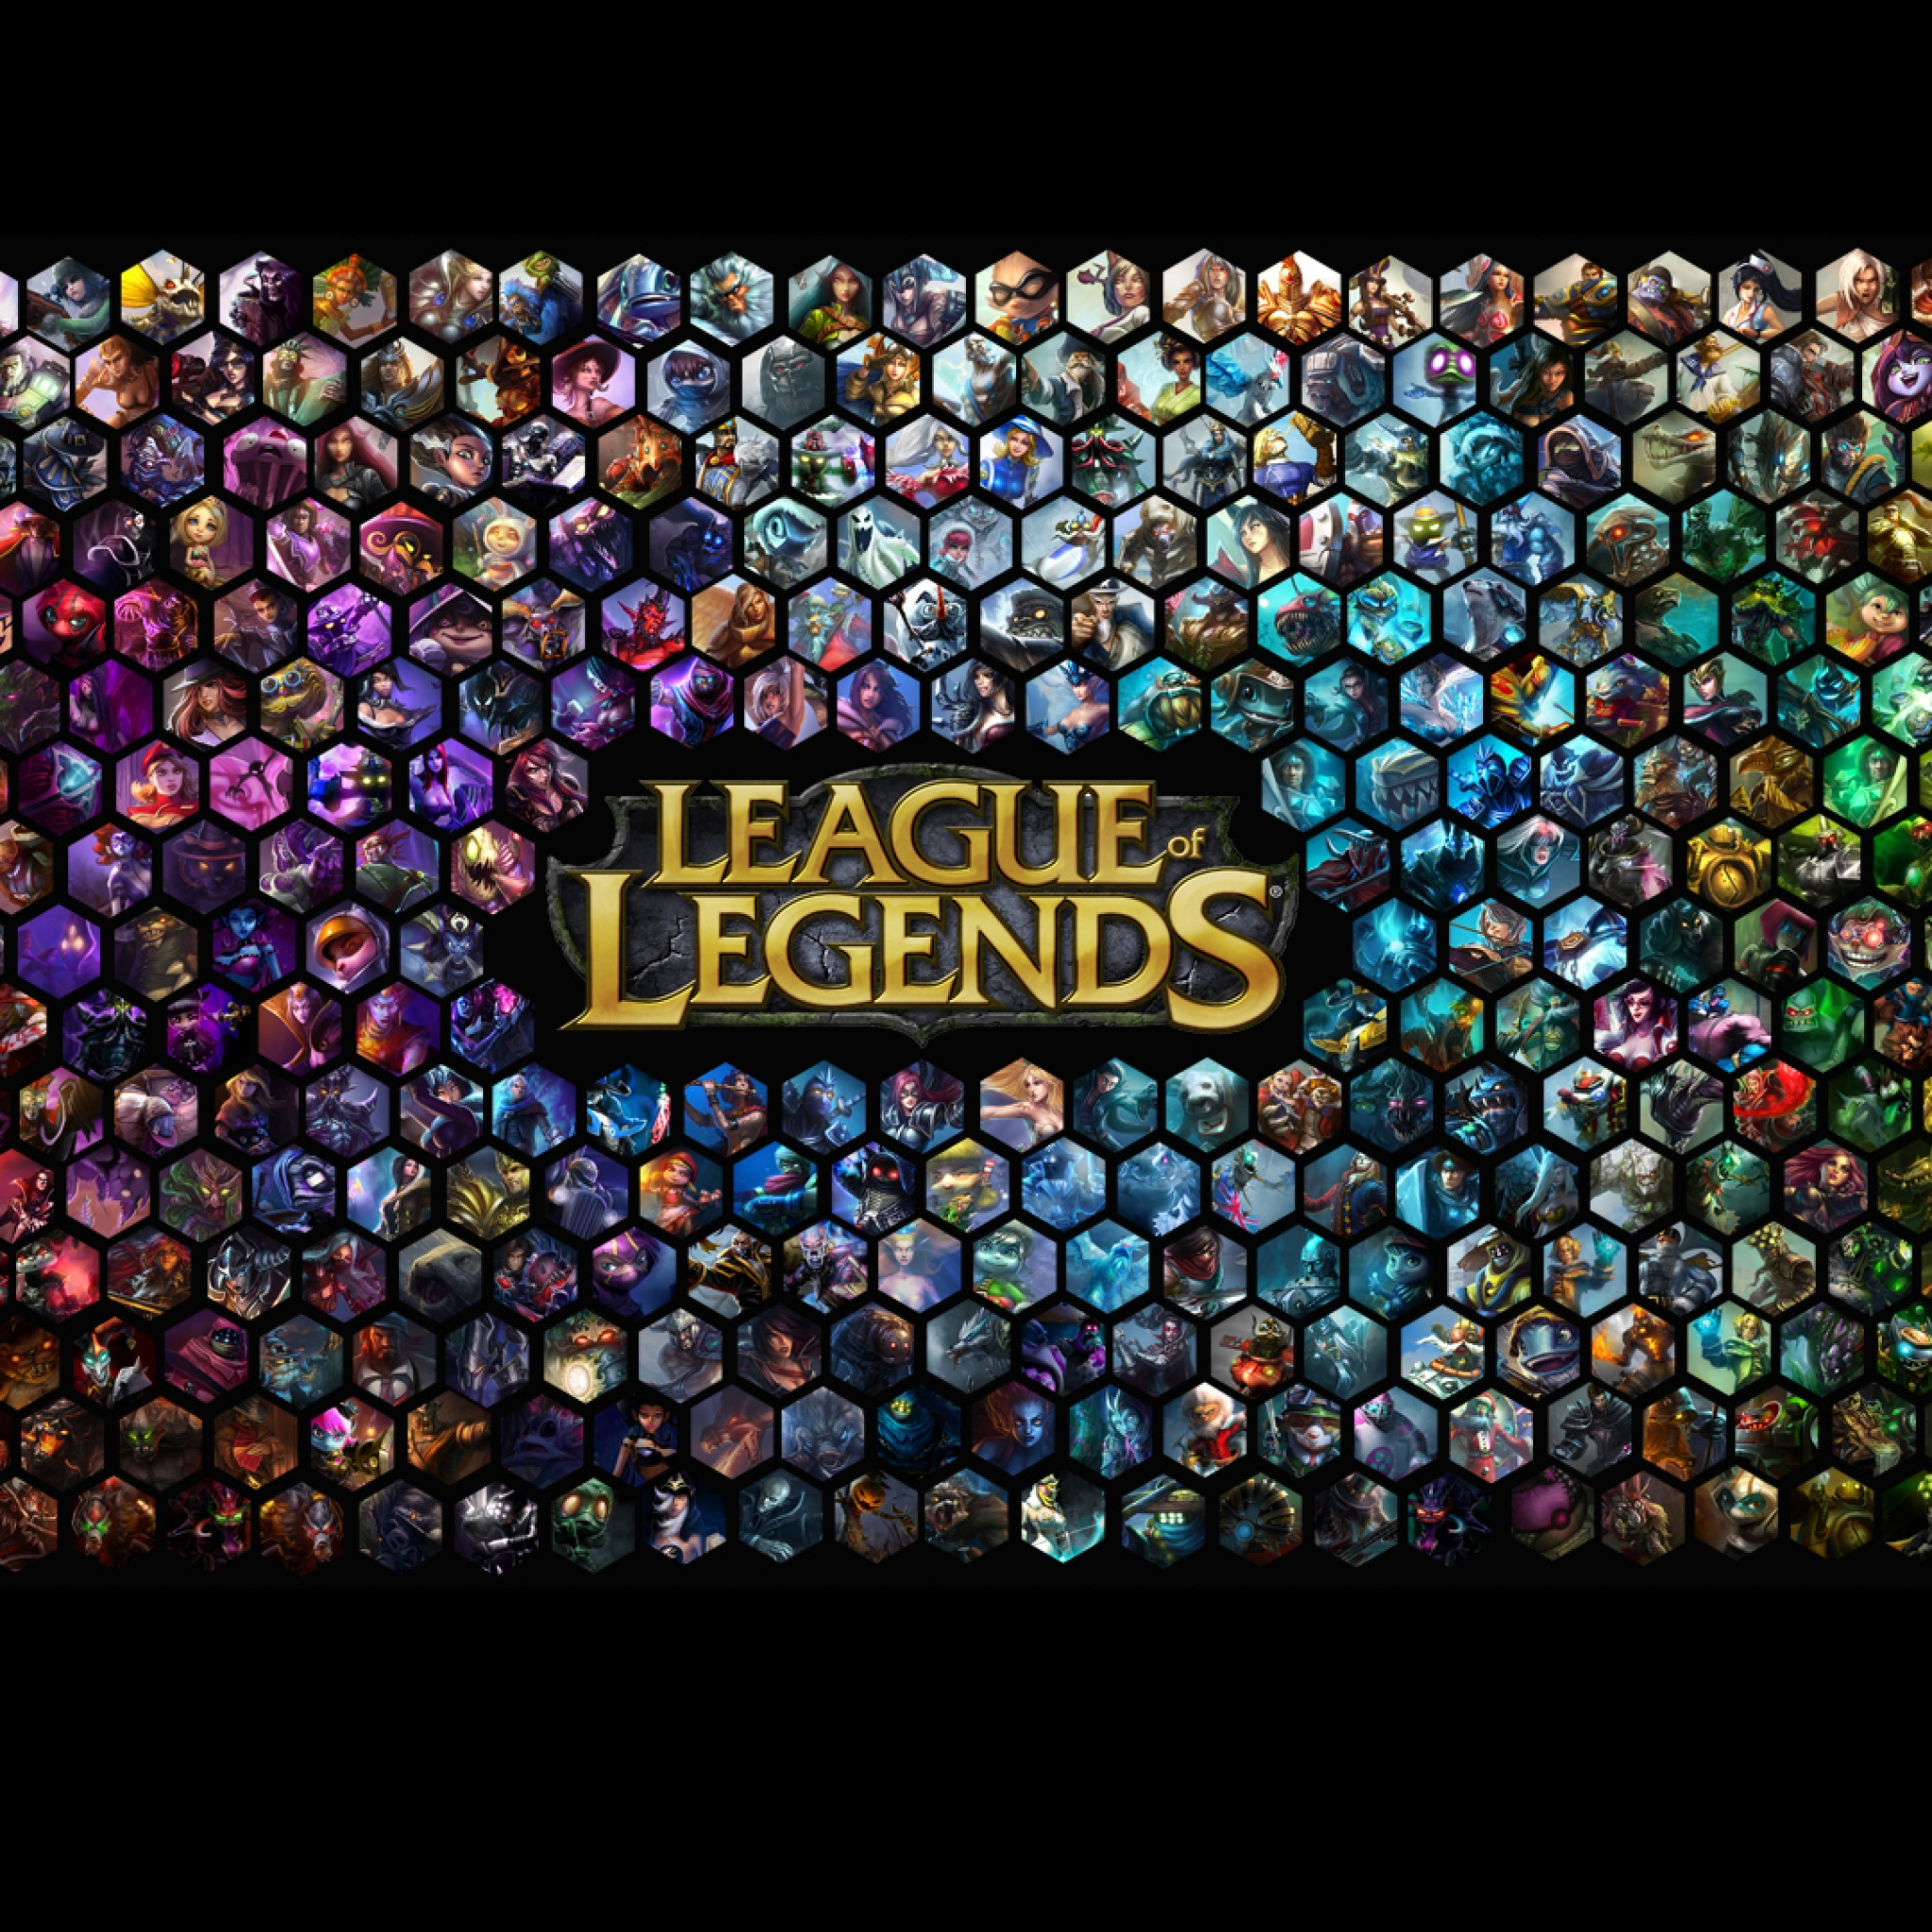 League Of Legends Third-Person Game 1912.77 Kb